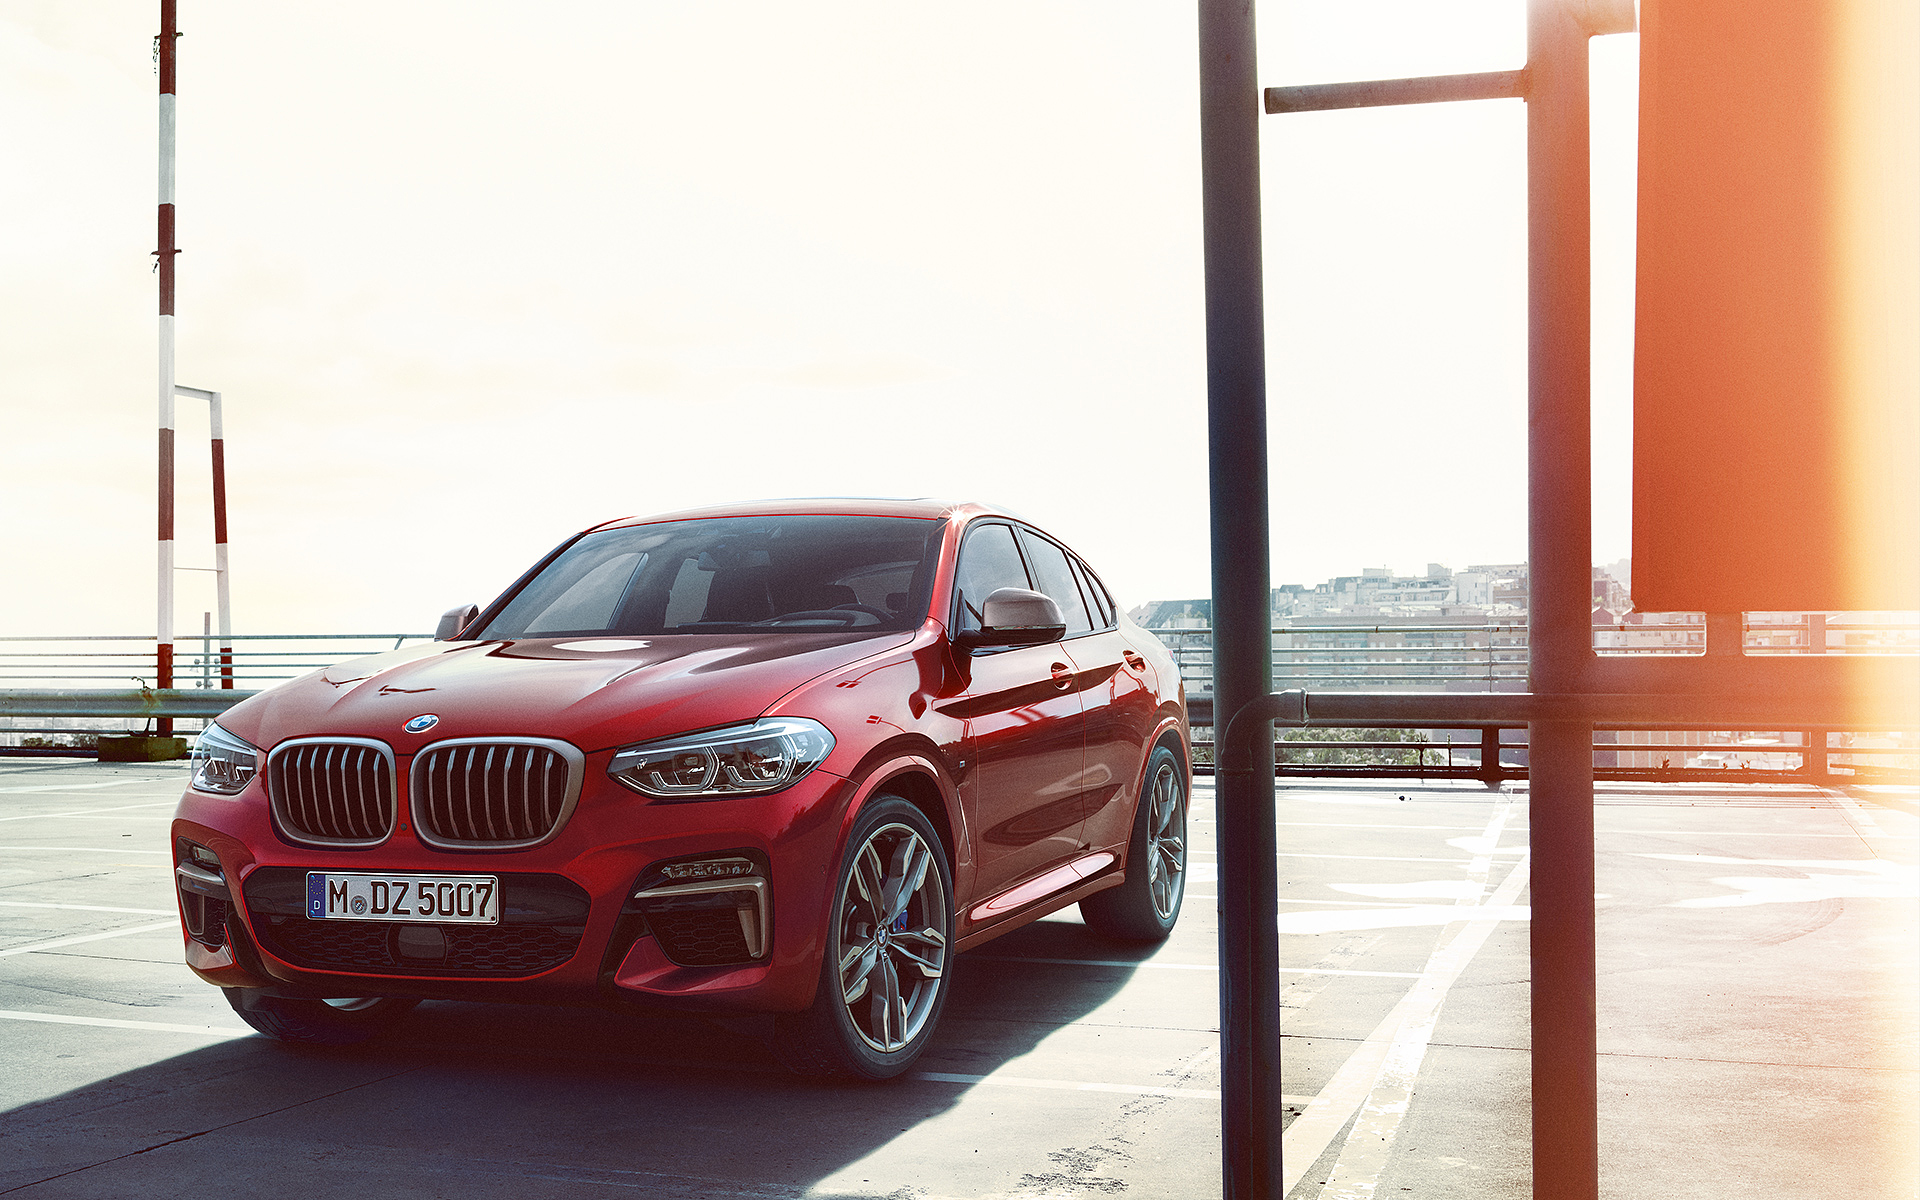 BMW X Series X4: metallic red vehicle in front view with city background.